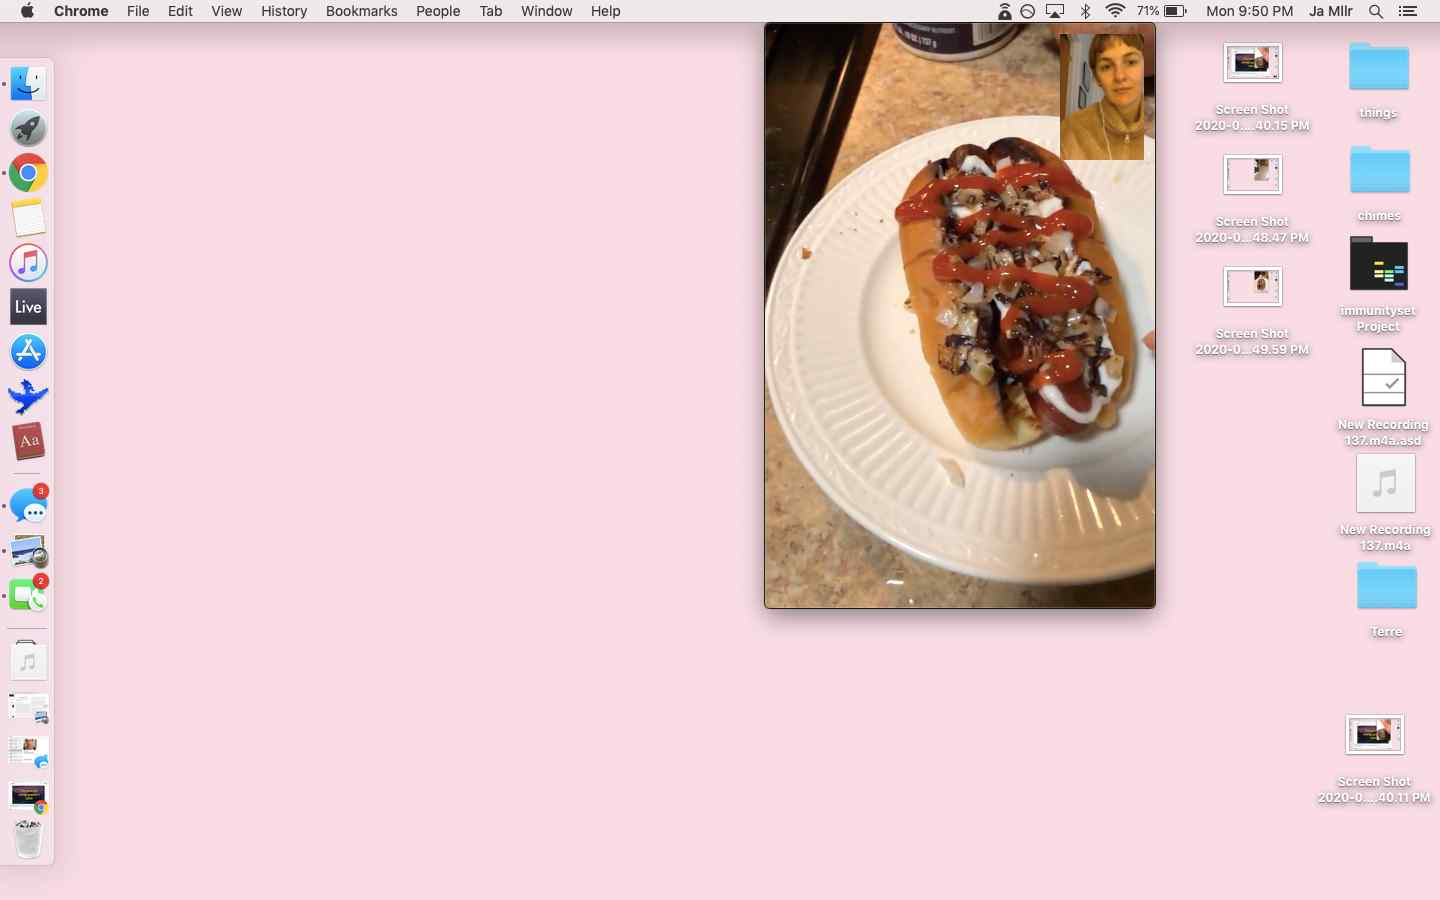 Mac screenshot of FaceTime conversation with A, on A's side the screen shows her dinner hotdog